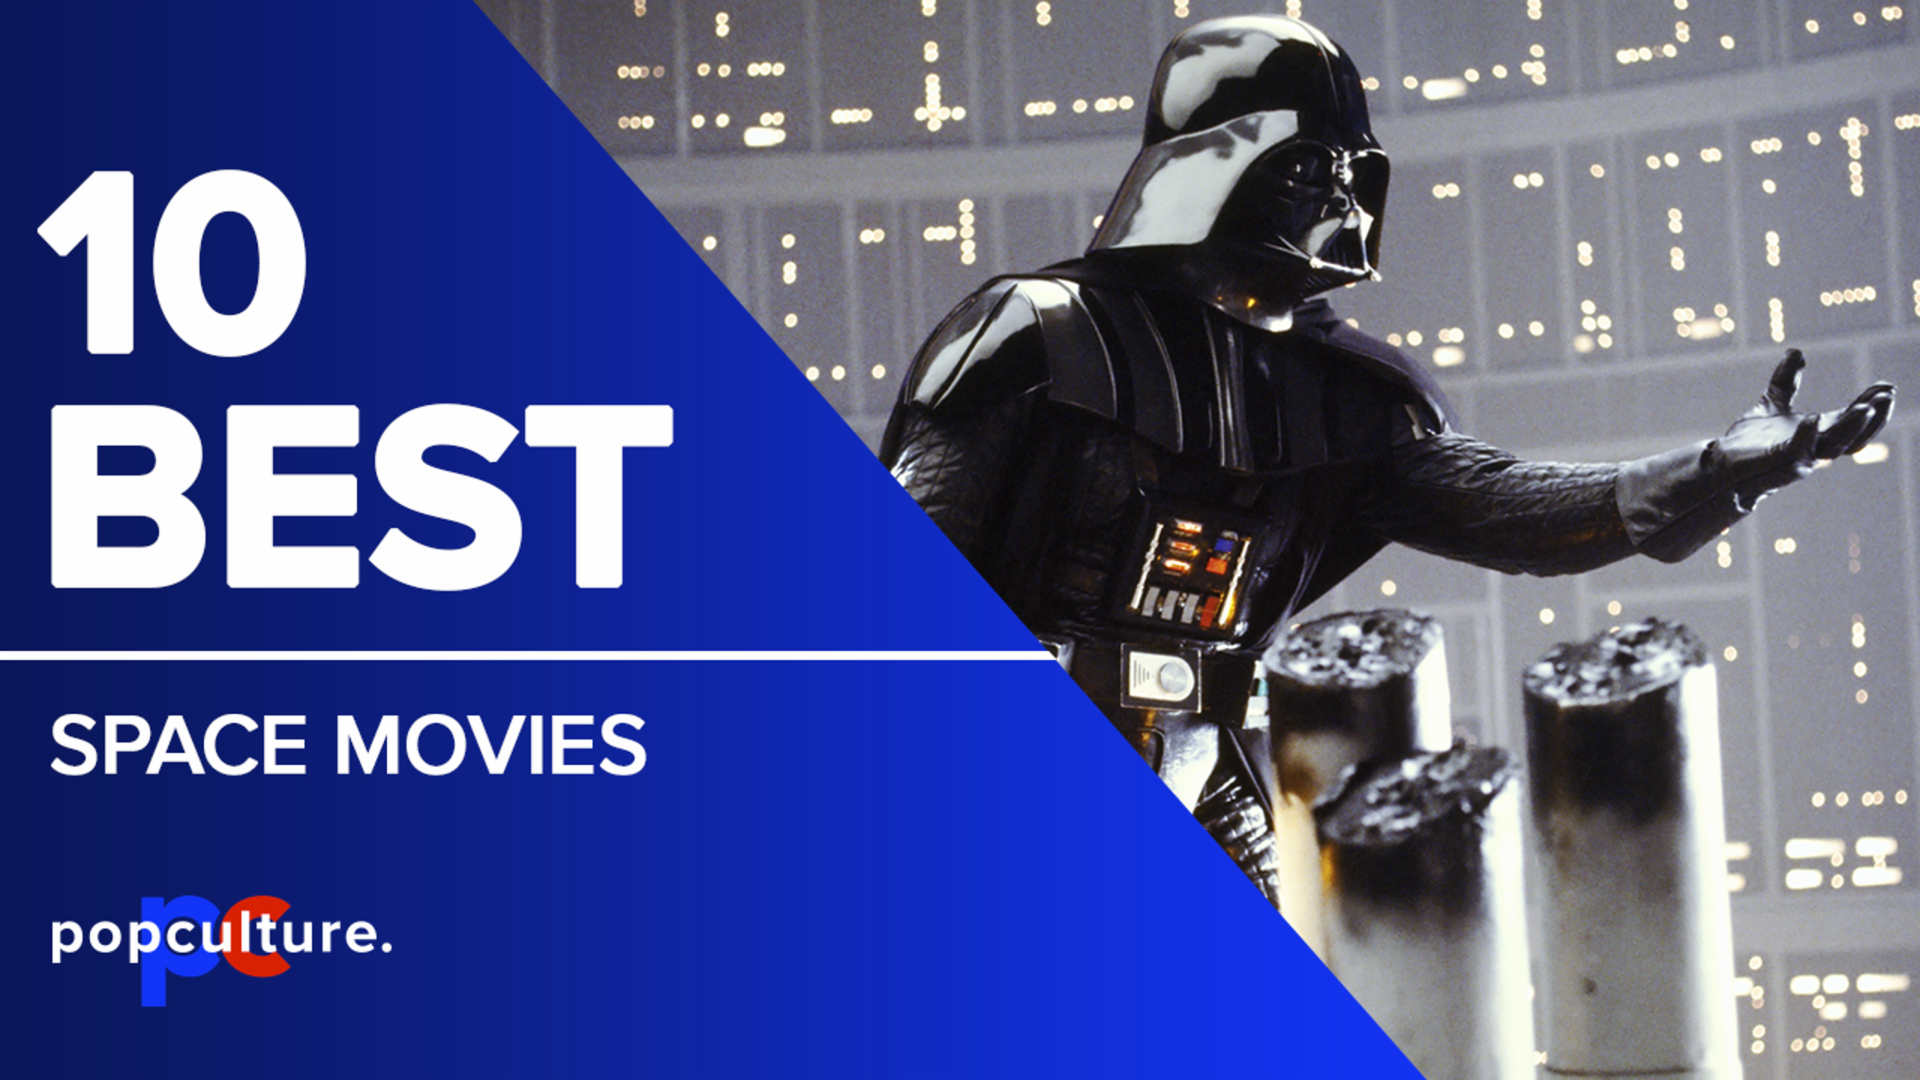 10 Best Space Movies - PopCulture screen capture